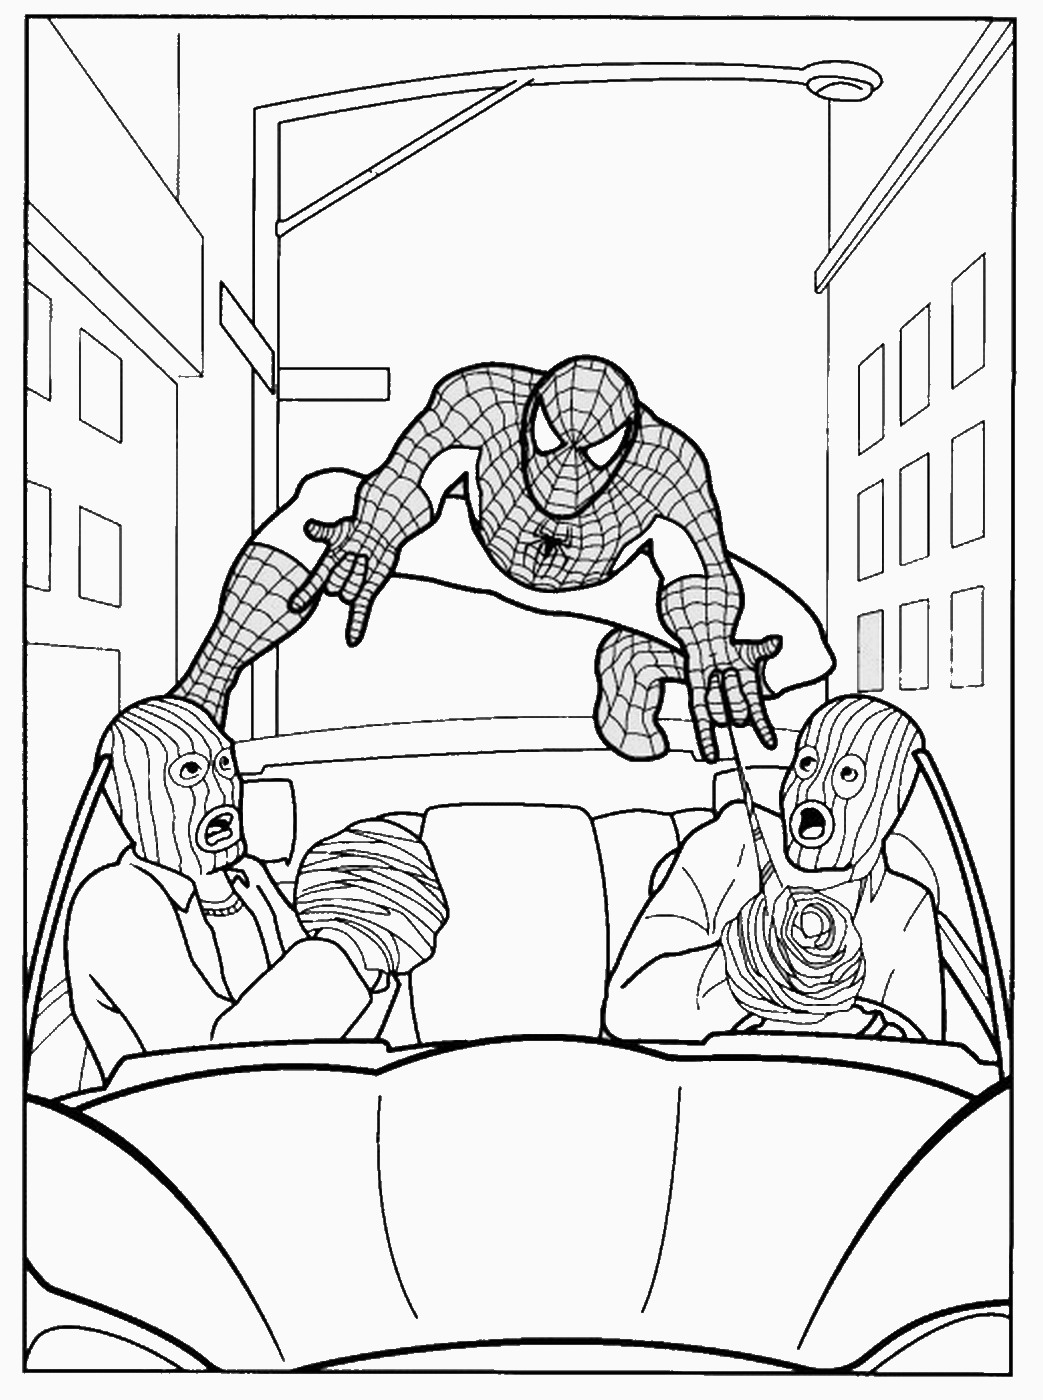 Spider man outline coloring pages sketch coloring page for Spiderman 3 coloring pages